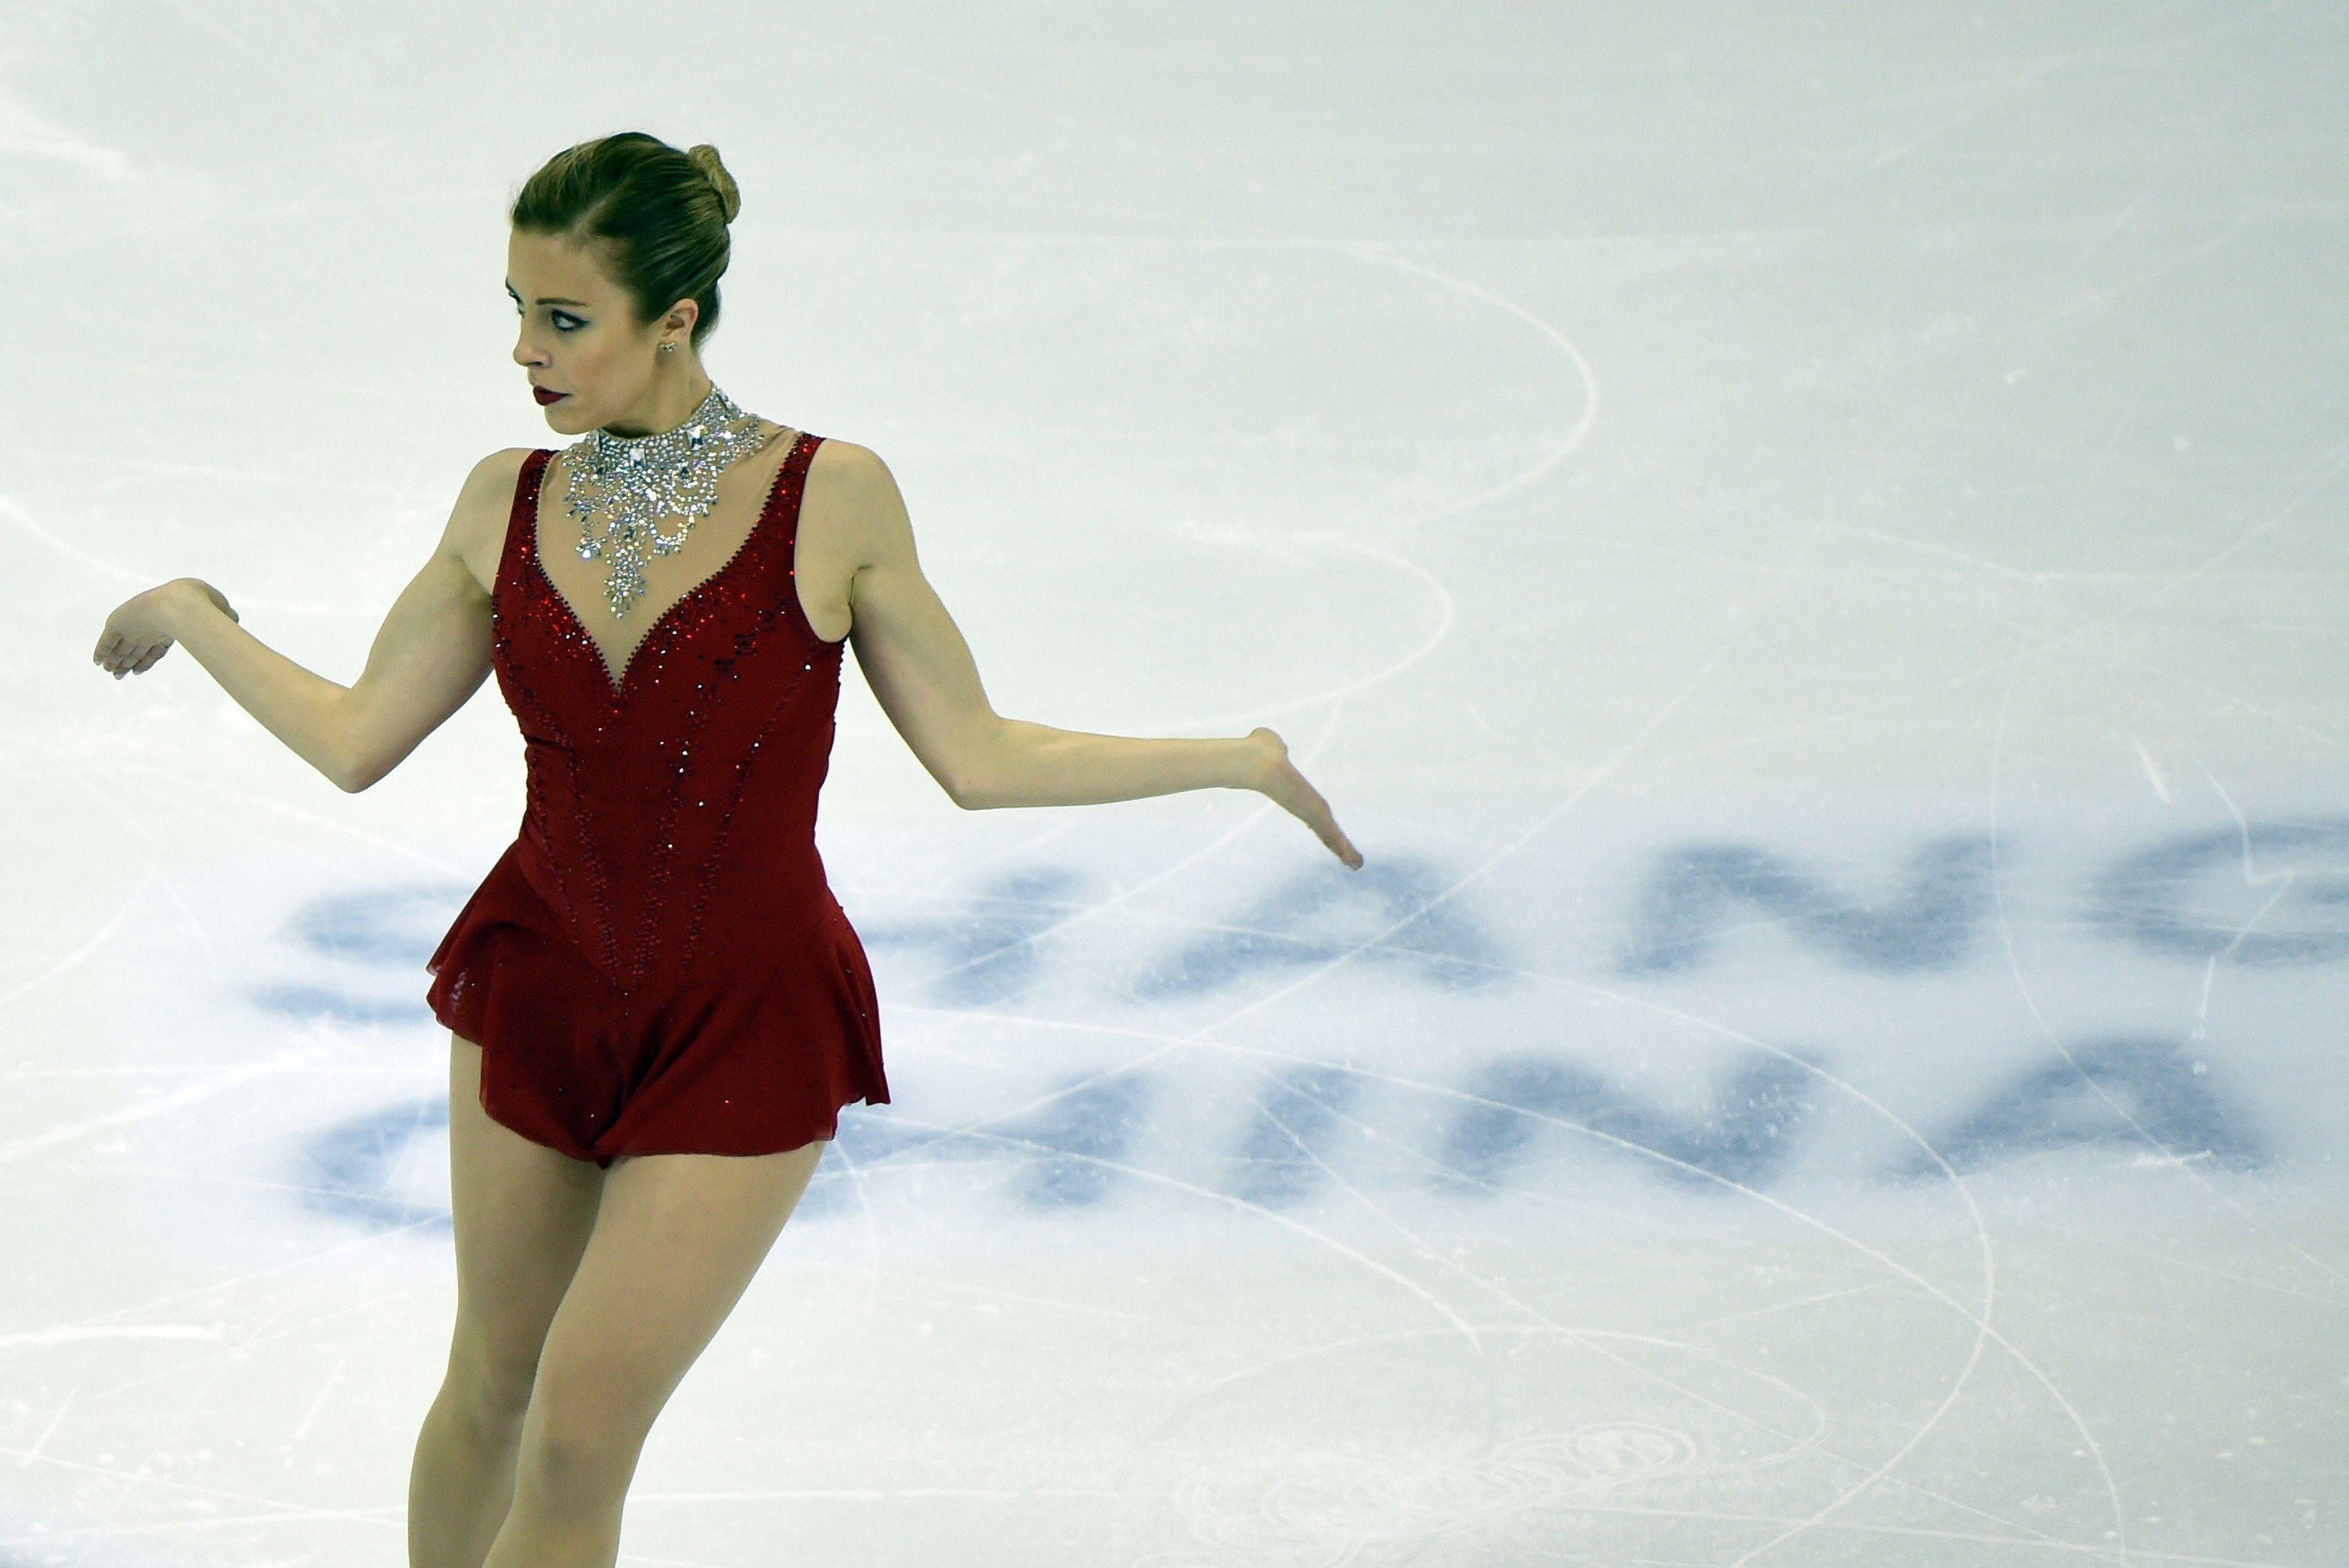 Ashley Wagner of the US competes in the ladies' free skating of the 2015 ISU World Figure Skating Championships at the Shanghai Oriental Sports Center in Shanghai on March 28, 2015.